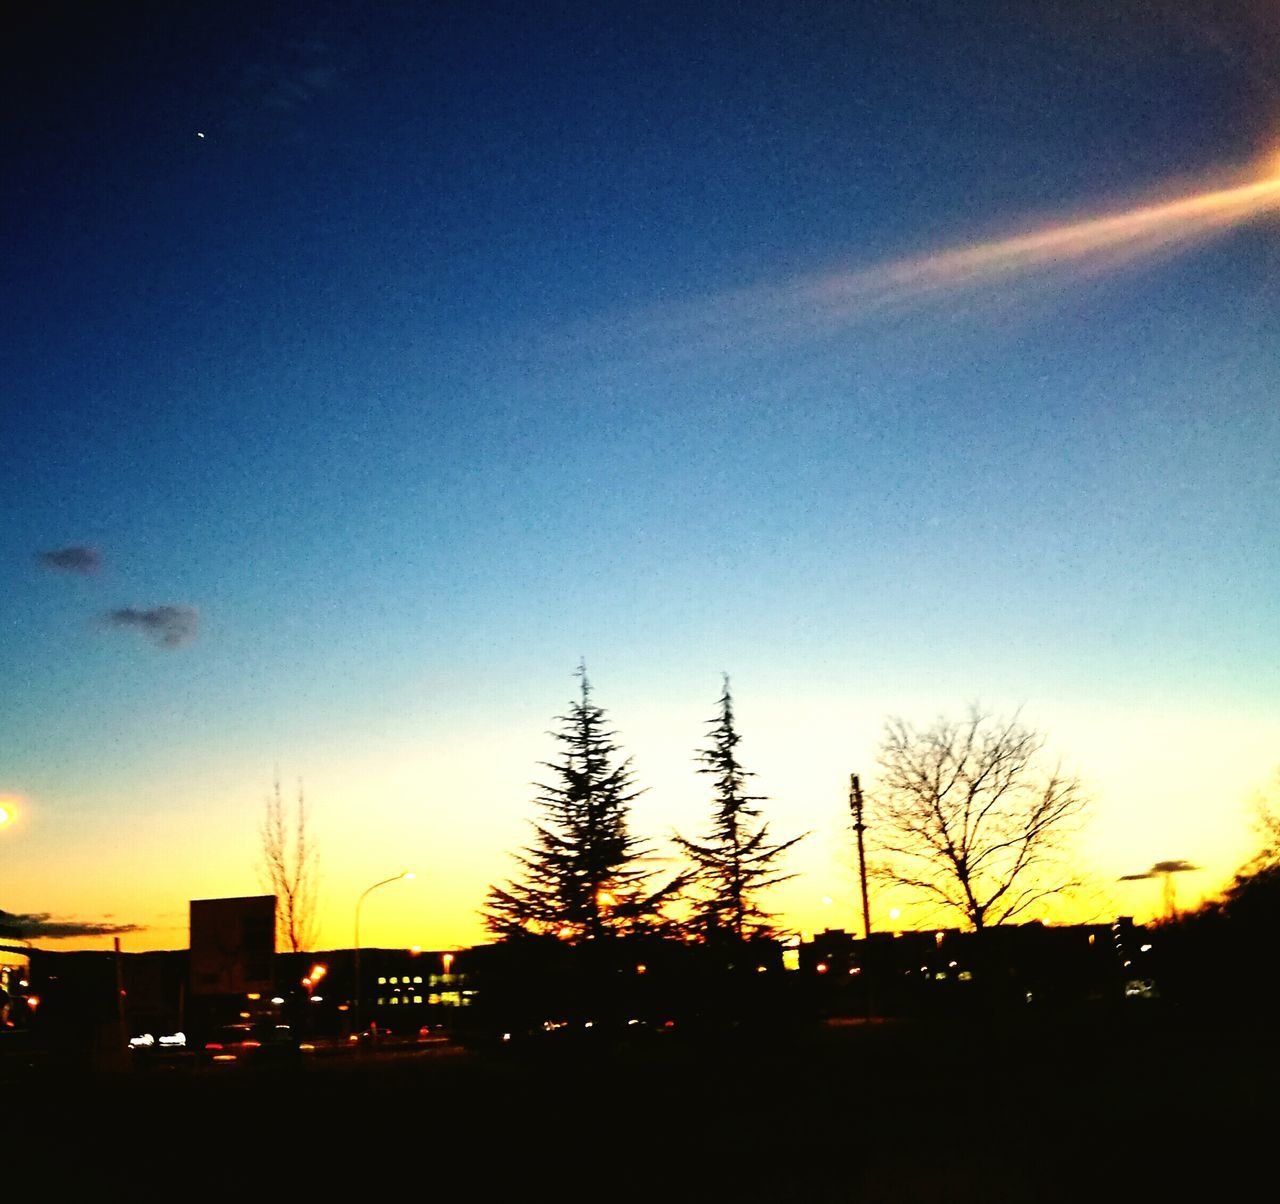 Real treee and fake tree City Sunset Silhouettes